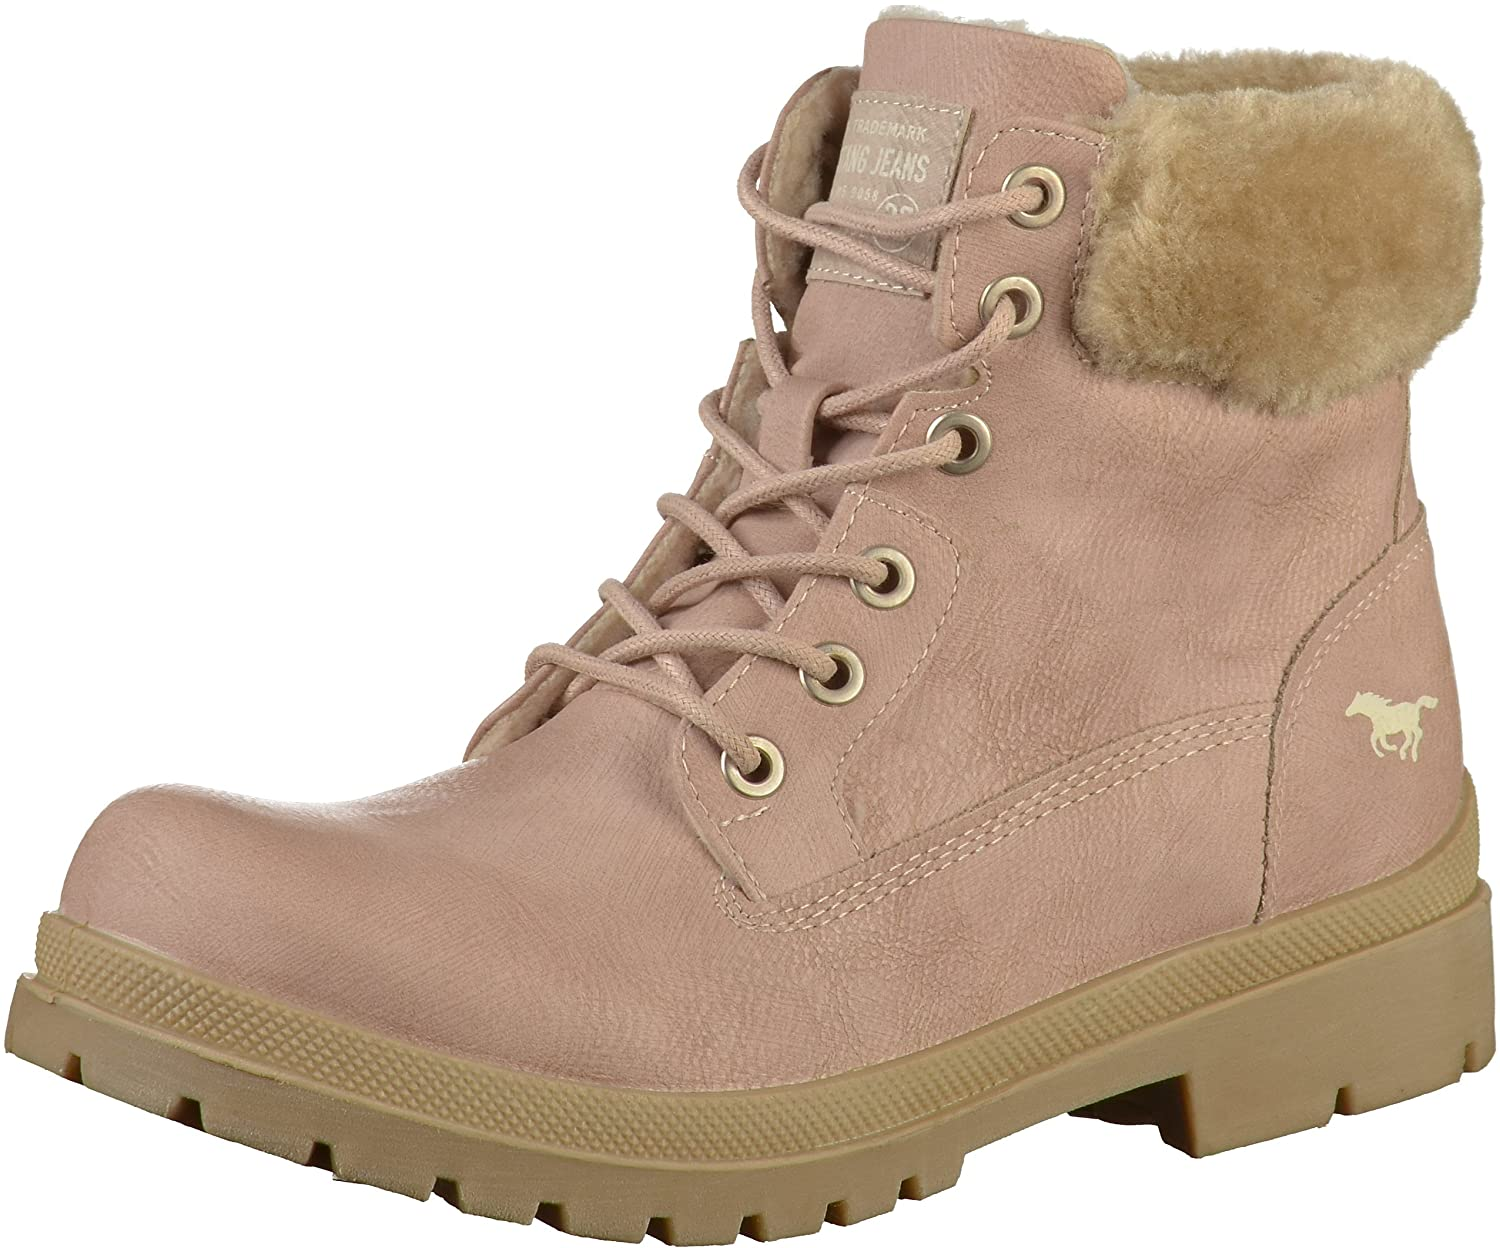 Mustang 1207-607, 1207-607, Bottes Femme, Gris Mustang B078HKY54F Rose 579647c - gis9ma7le.space